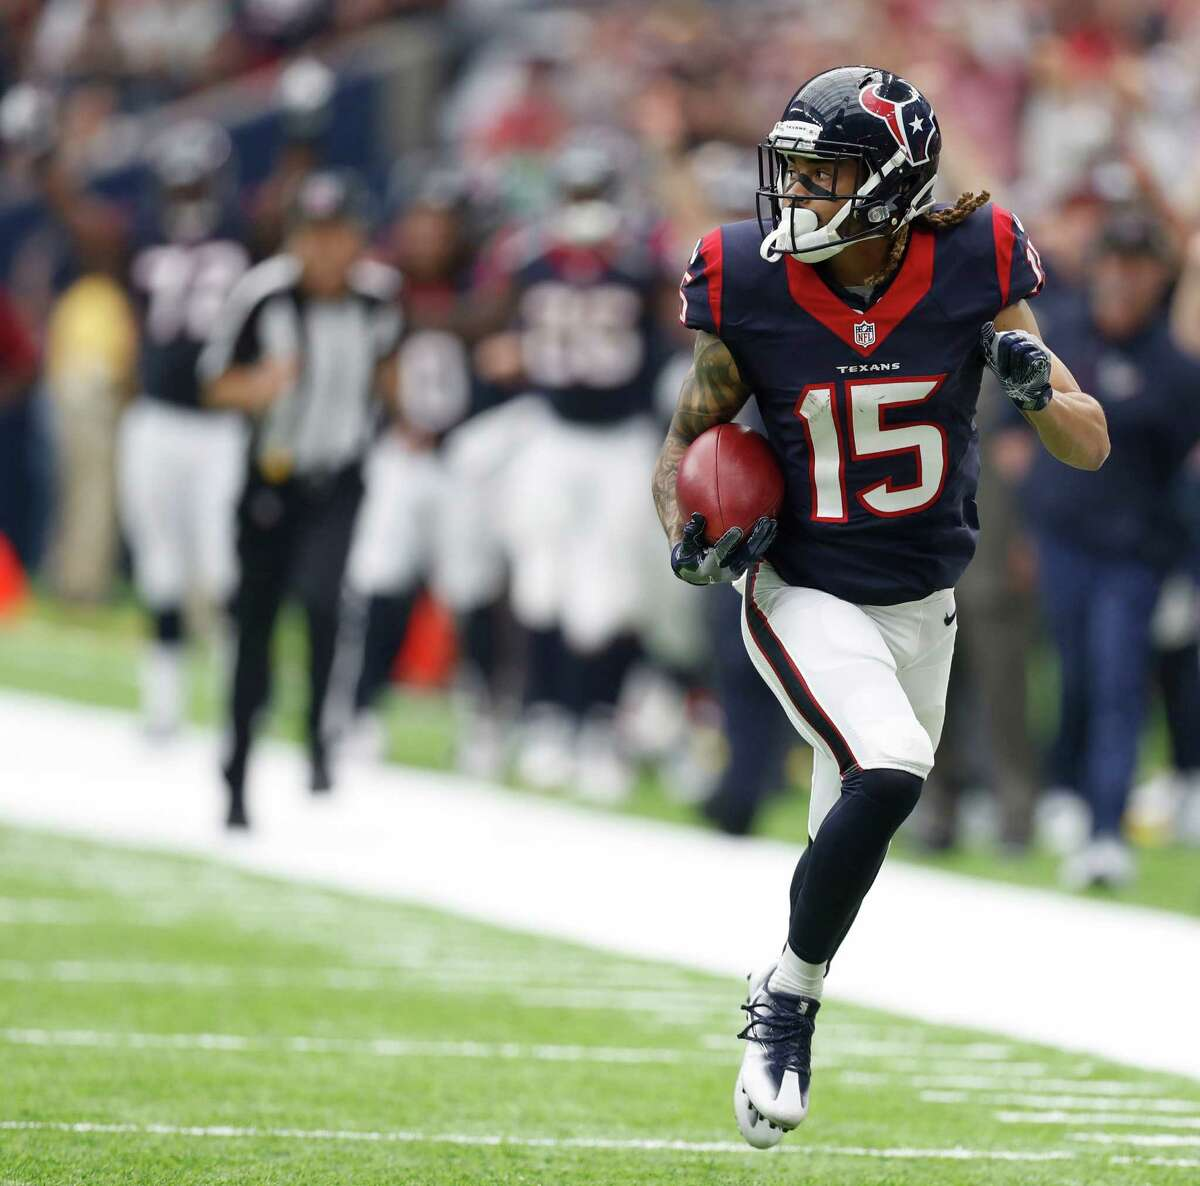 FIVE UP 1. Texans wide receiver Will Fuller The dynamic rookie first-round draft pick caught seven passes for 81 yards and a touchdown on nine targets. He also had the game-winning punt return for a touchdown, a 67-yard effort. Fuller has emerged as one of the more dangerous young deep threats in the league. He leads the Texans with 19 catches for 323 yards and two touchdowns.